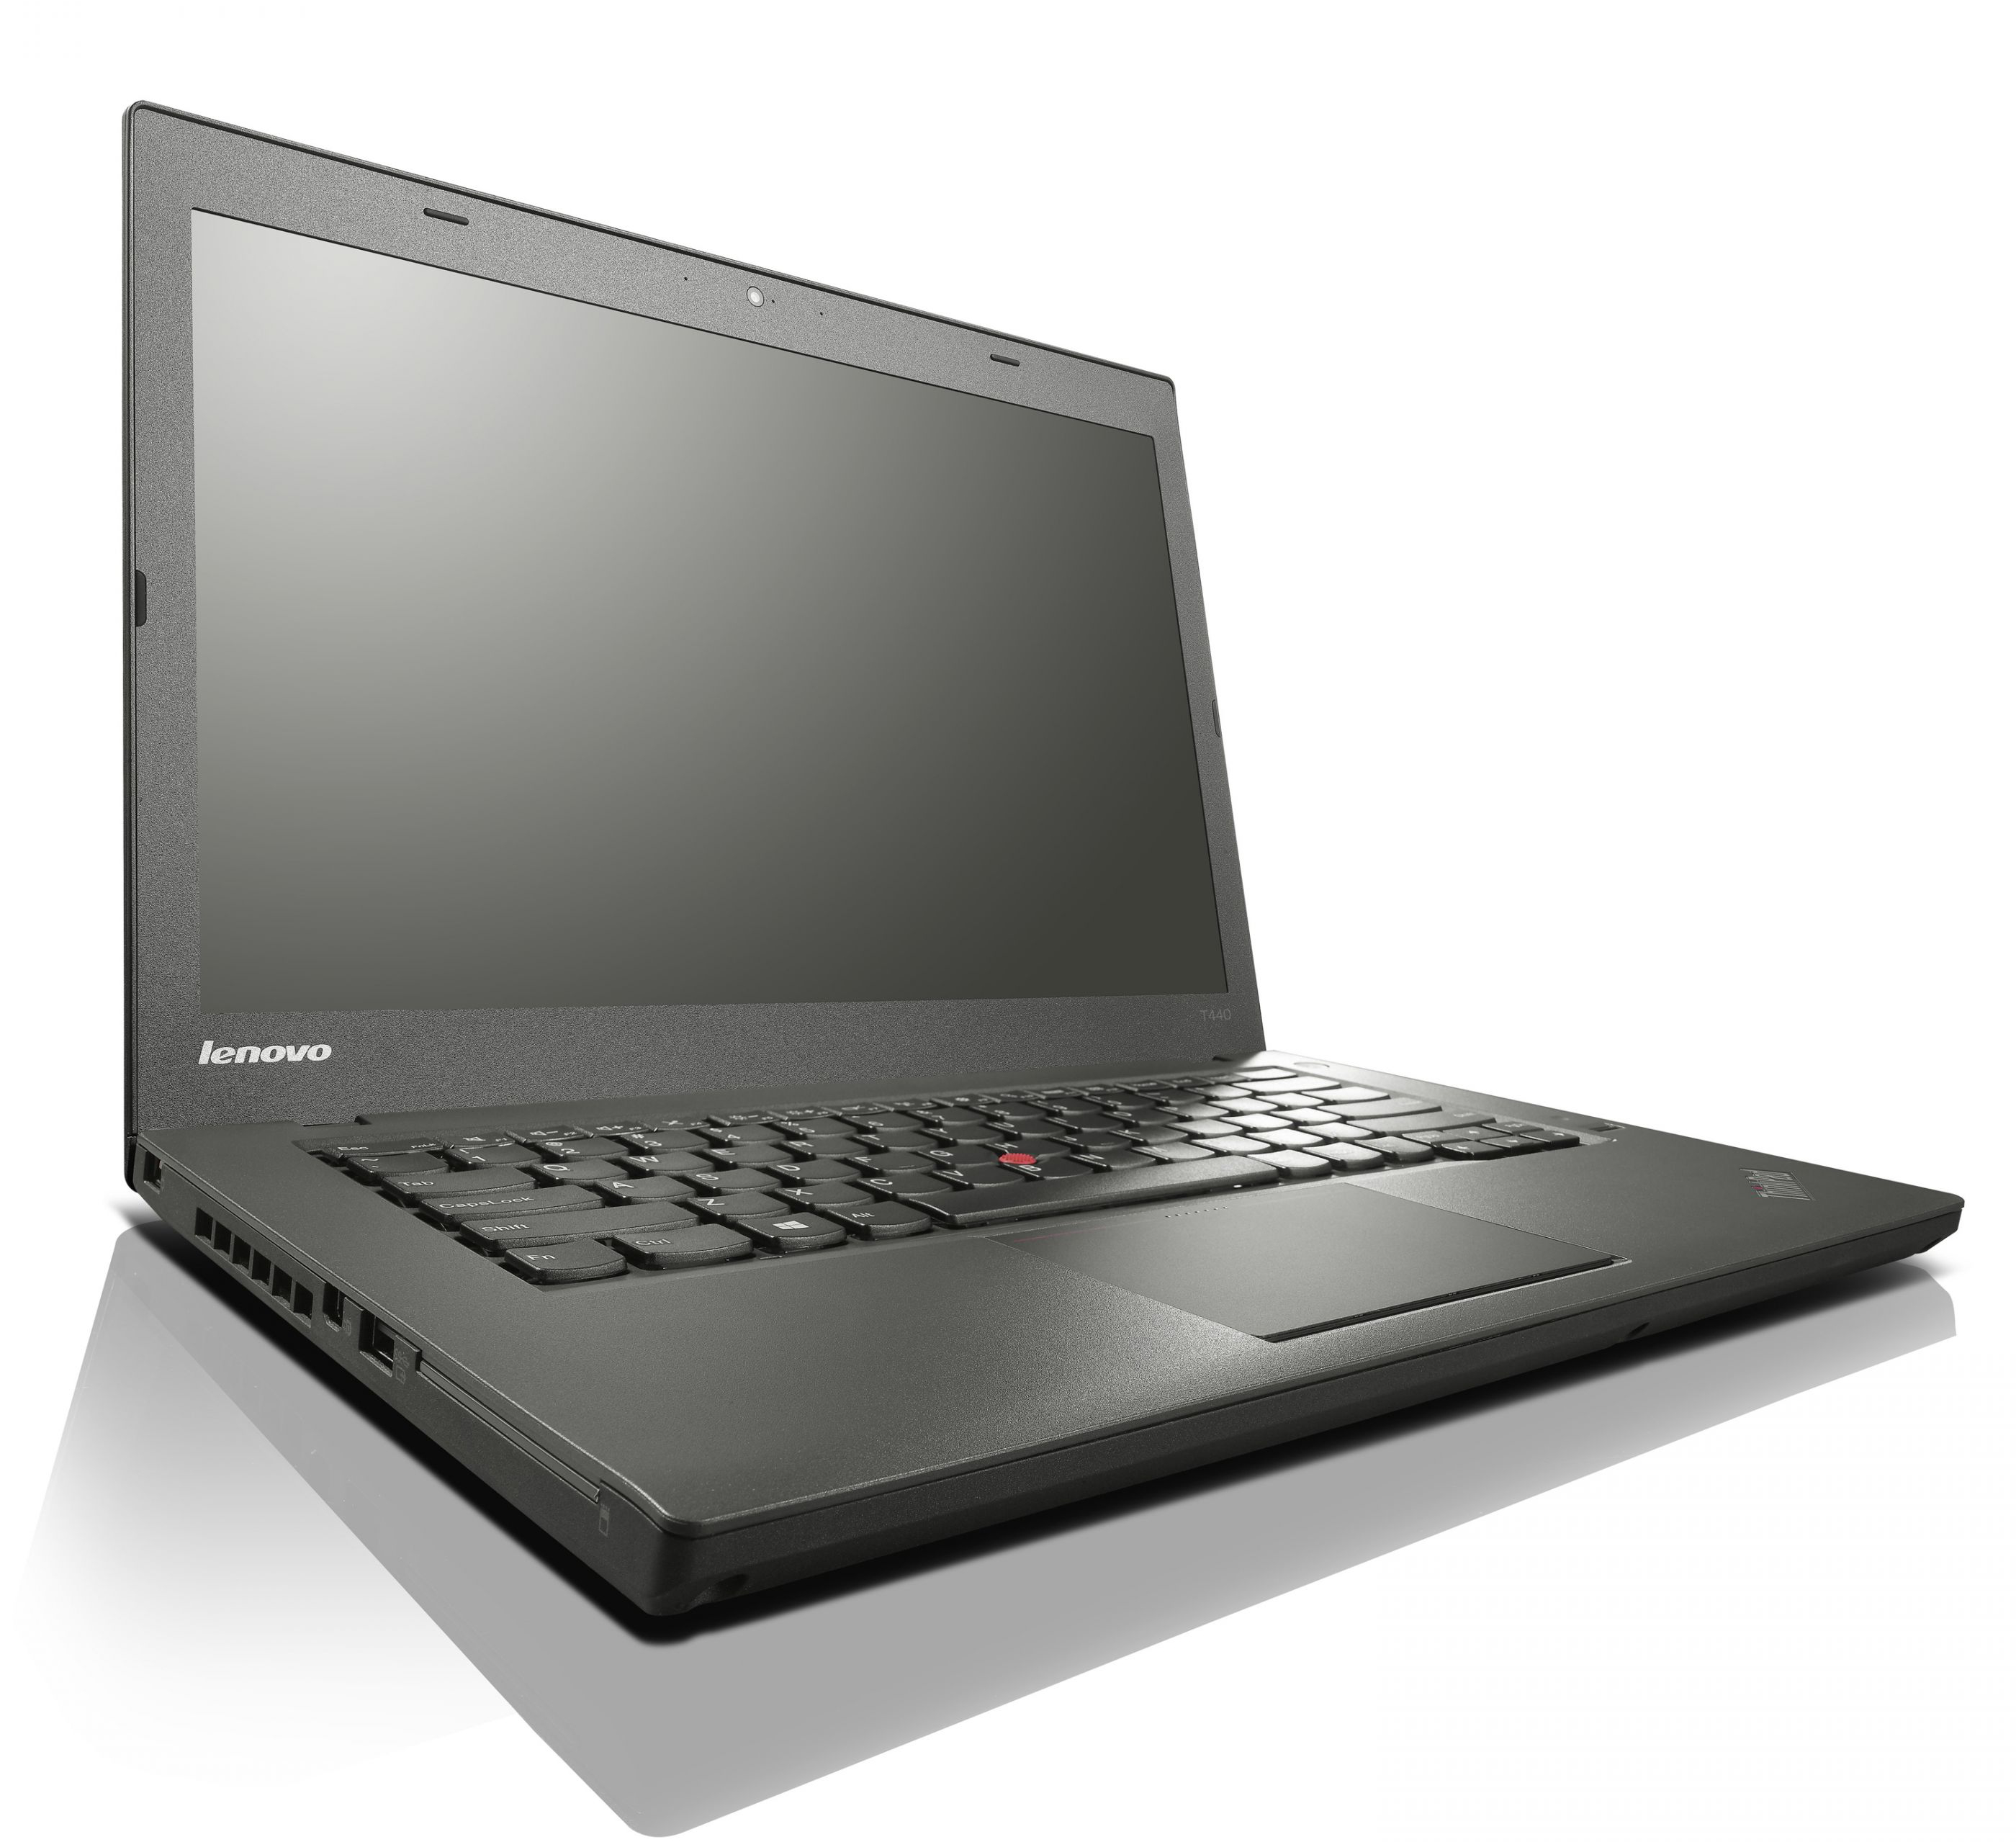 lenovo thinkpad t440 notebook gebraucht kaufen 1 wahl. Black Bedroom Furniture Sets. Home Design Ideas